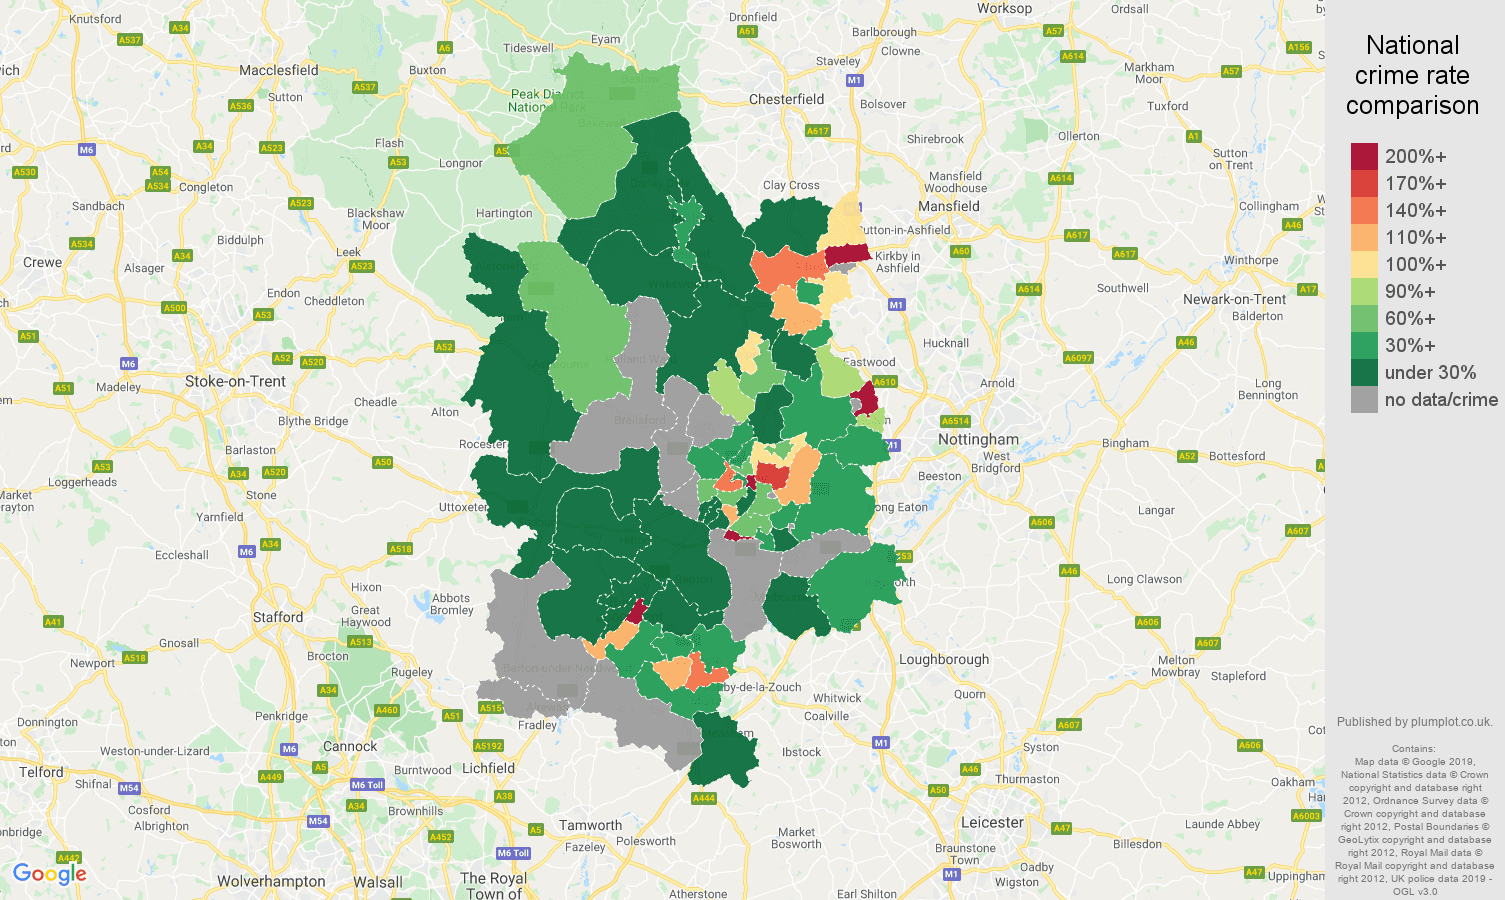 Derby shoplifting crime rate comparison map